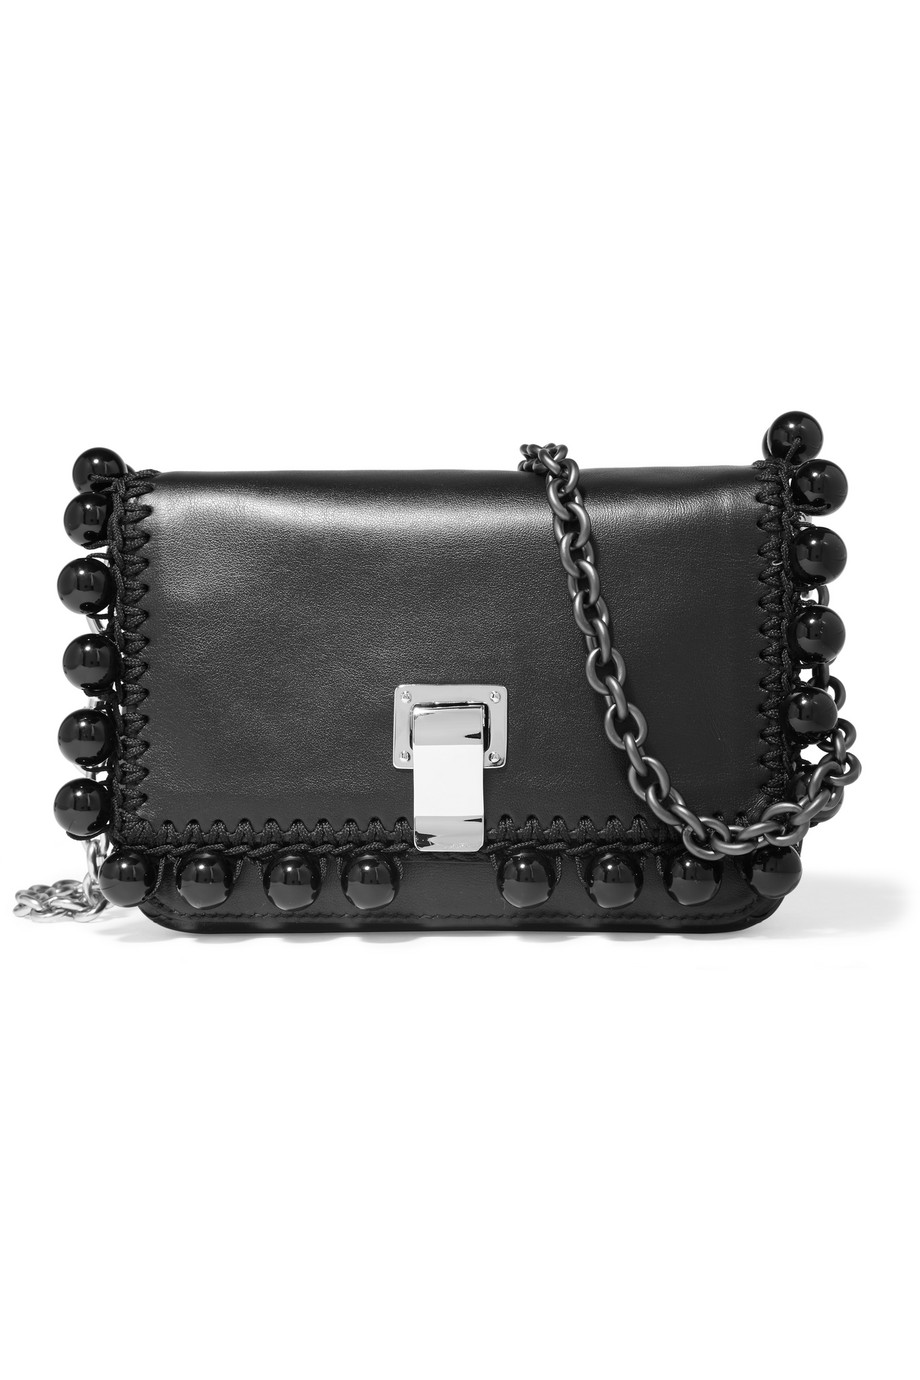 Proenza Schouler Courier Extra Small Embellished Leather Shoulder Bag, Black, Women's, Size: XS